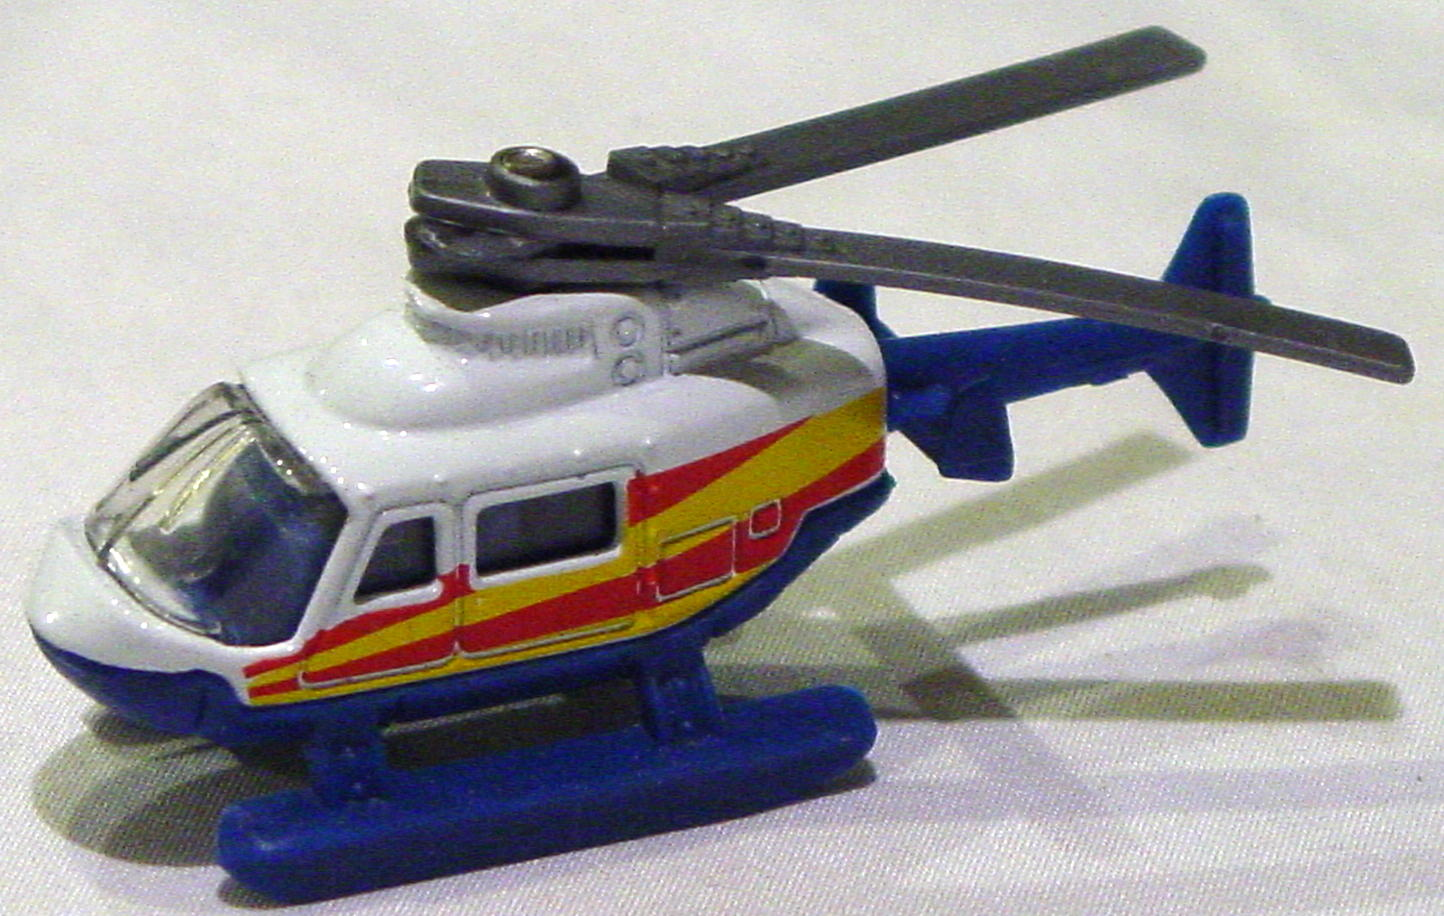 Offshore SuperFast 60 K 1 - 1999 60 Rescue Chopper White yellow and red tampo made in China